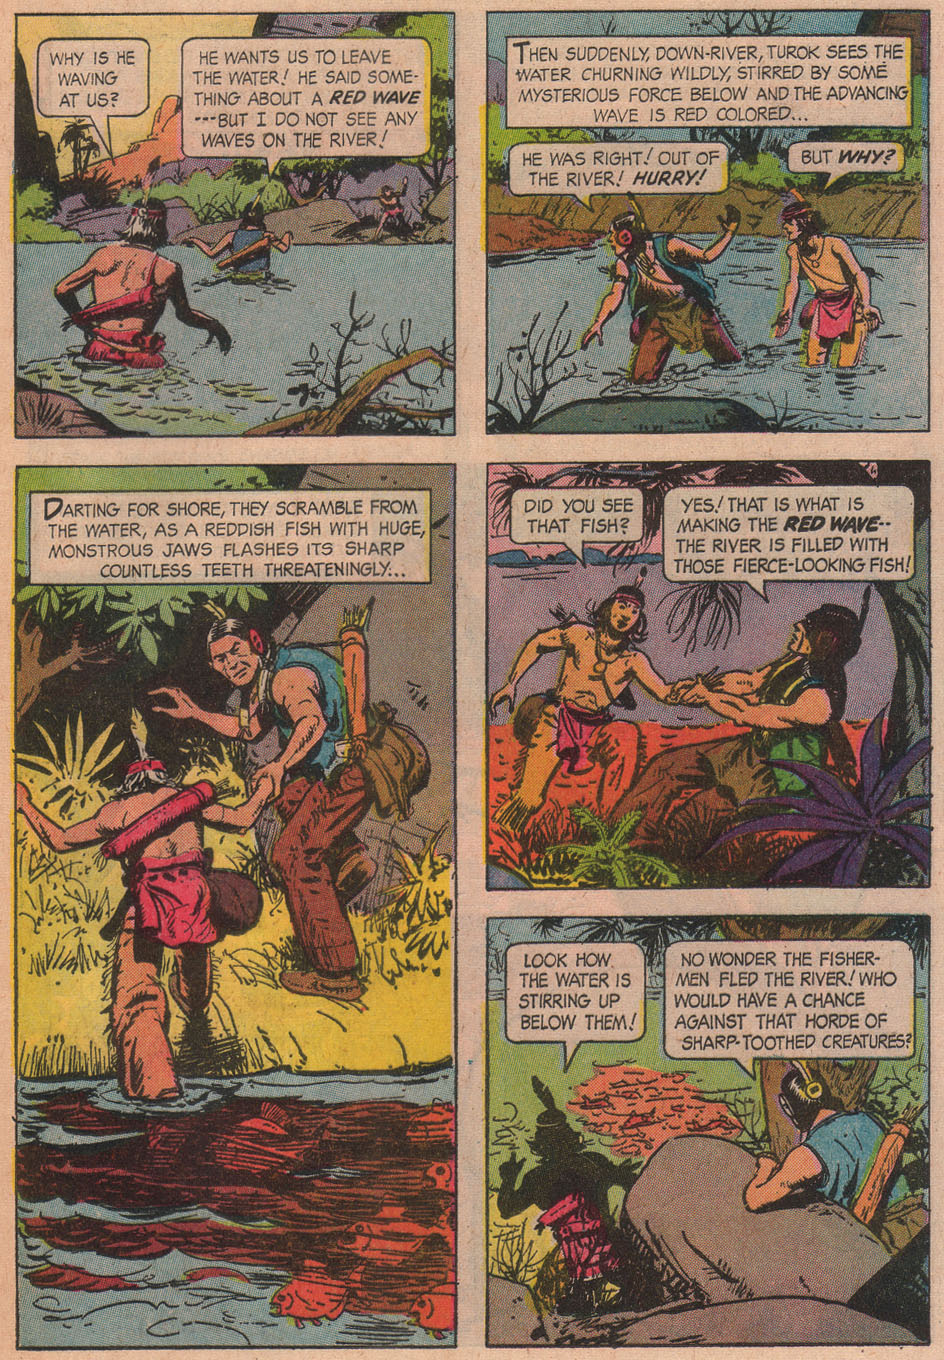 Read online Turok, Son of Stone comic -  Issue #51 - 25